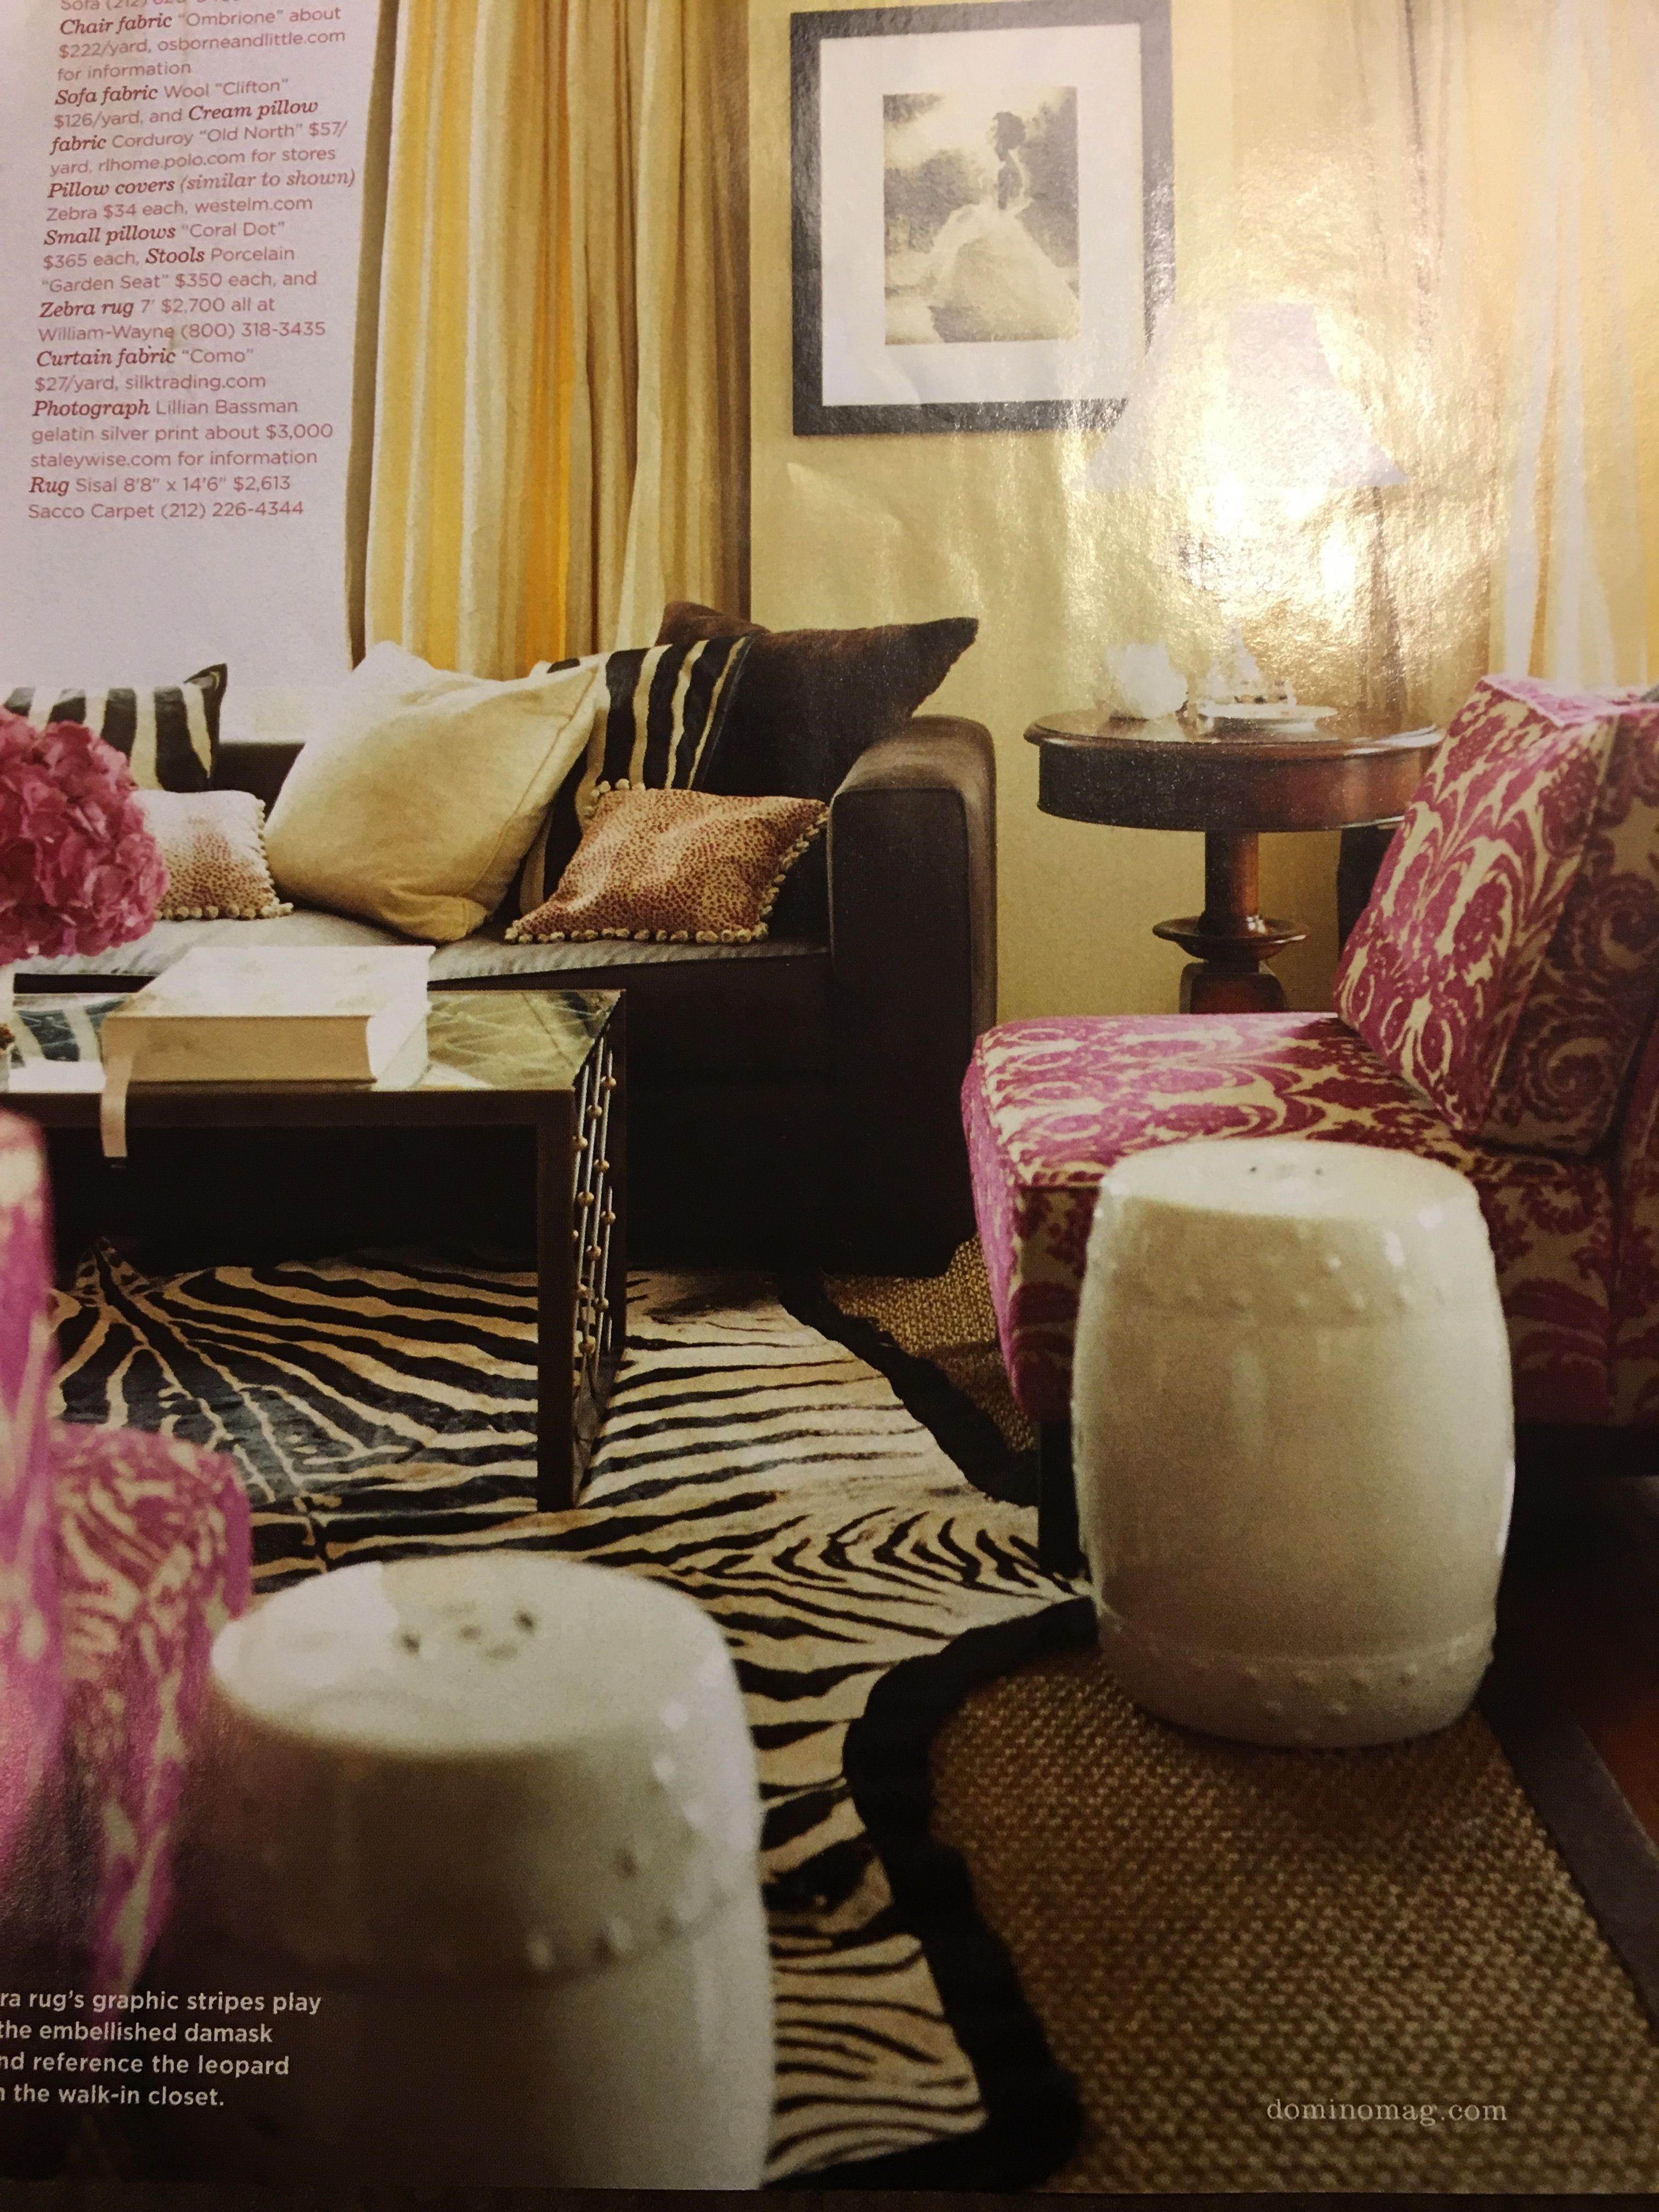 Love the fuchsia chairs and zebra | For the Home | Pinterest ...